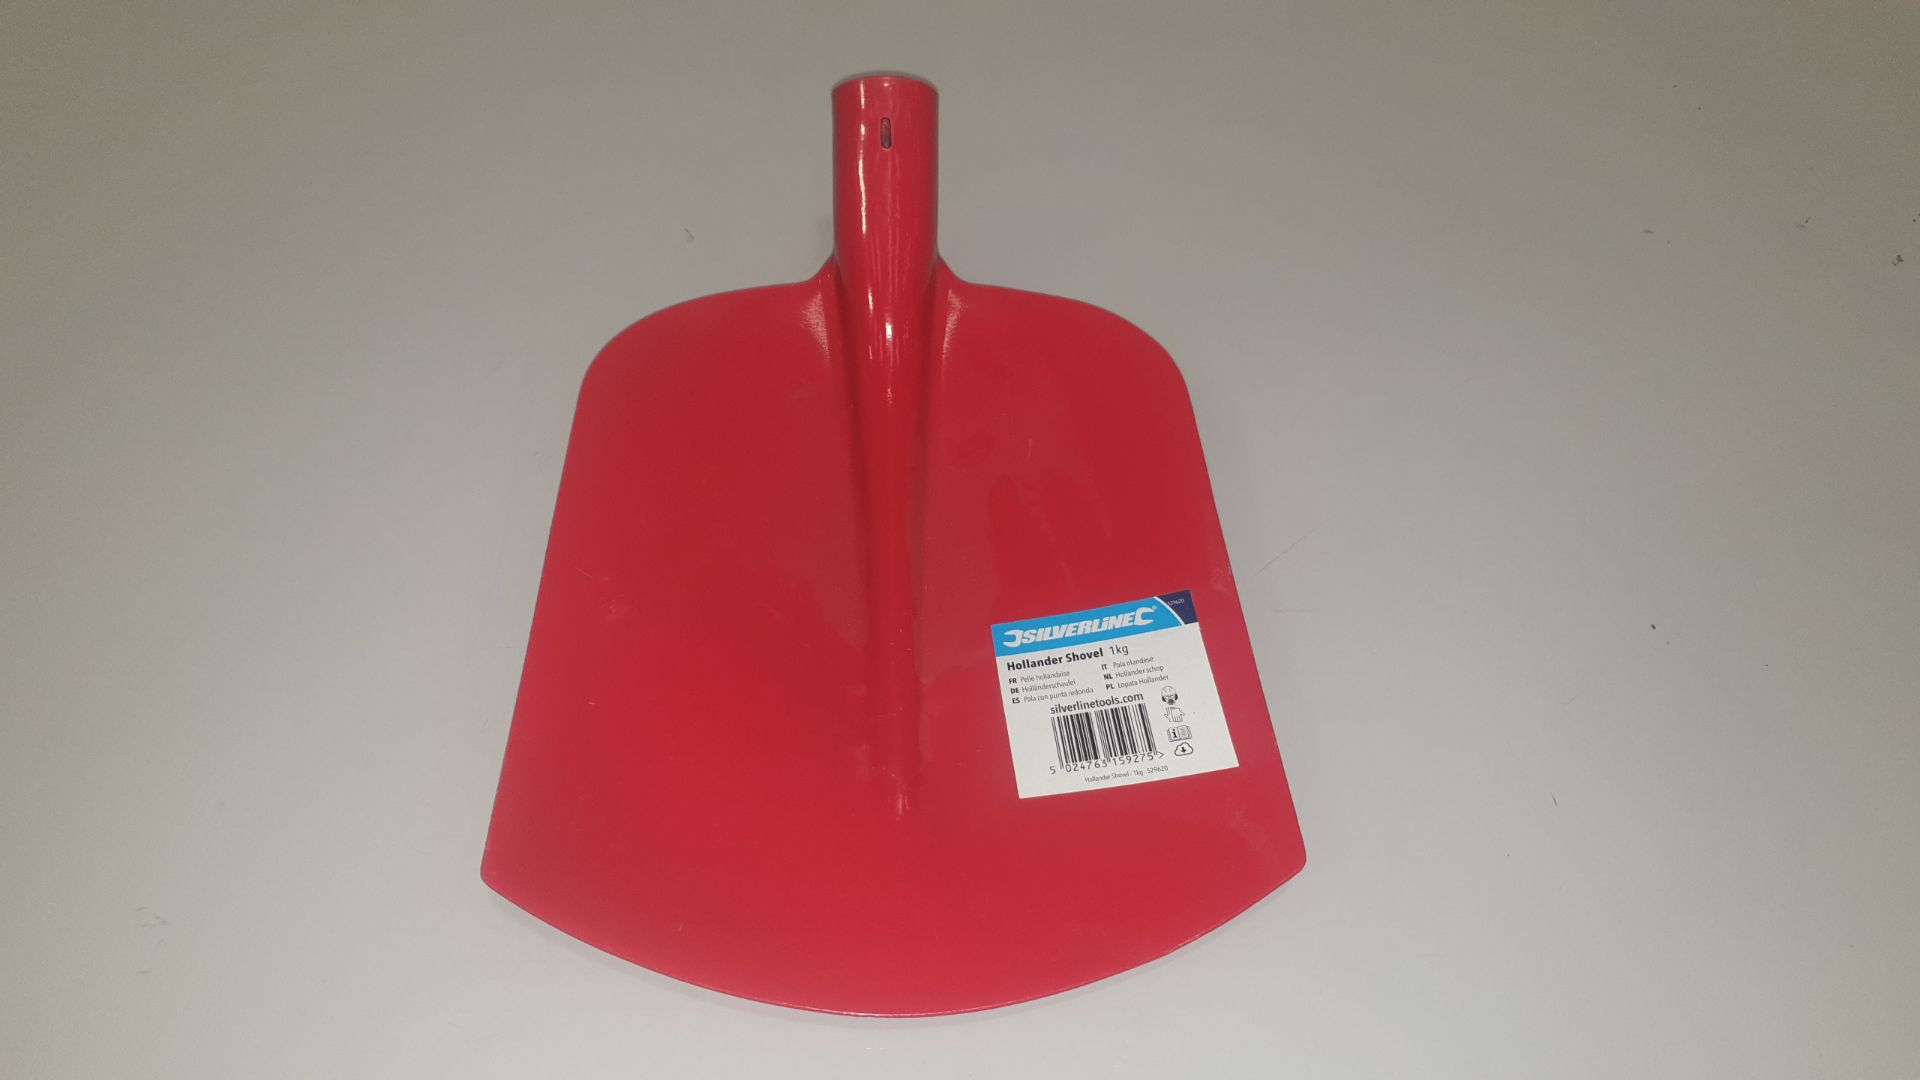 Lot 335 - 36 X BRAND NEW SILVERLINE CONTRACTORS HOLLANDERSHOVEL 1KG (PROD CODE 529620) TRADE PRICE £5.14